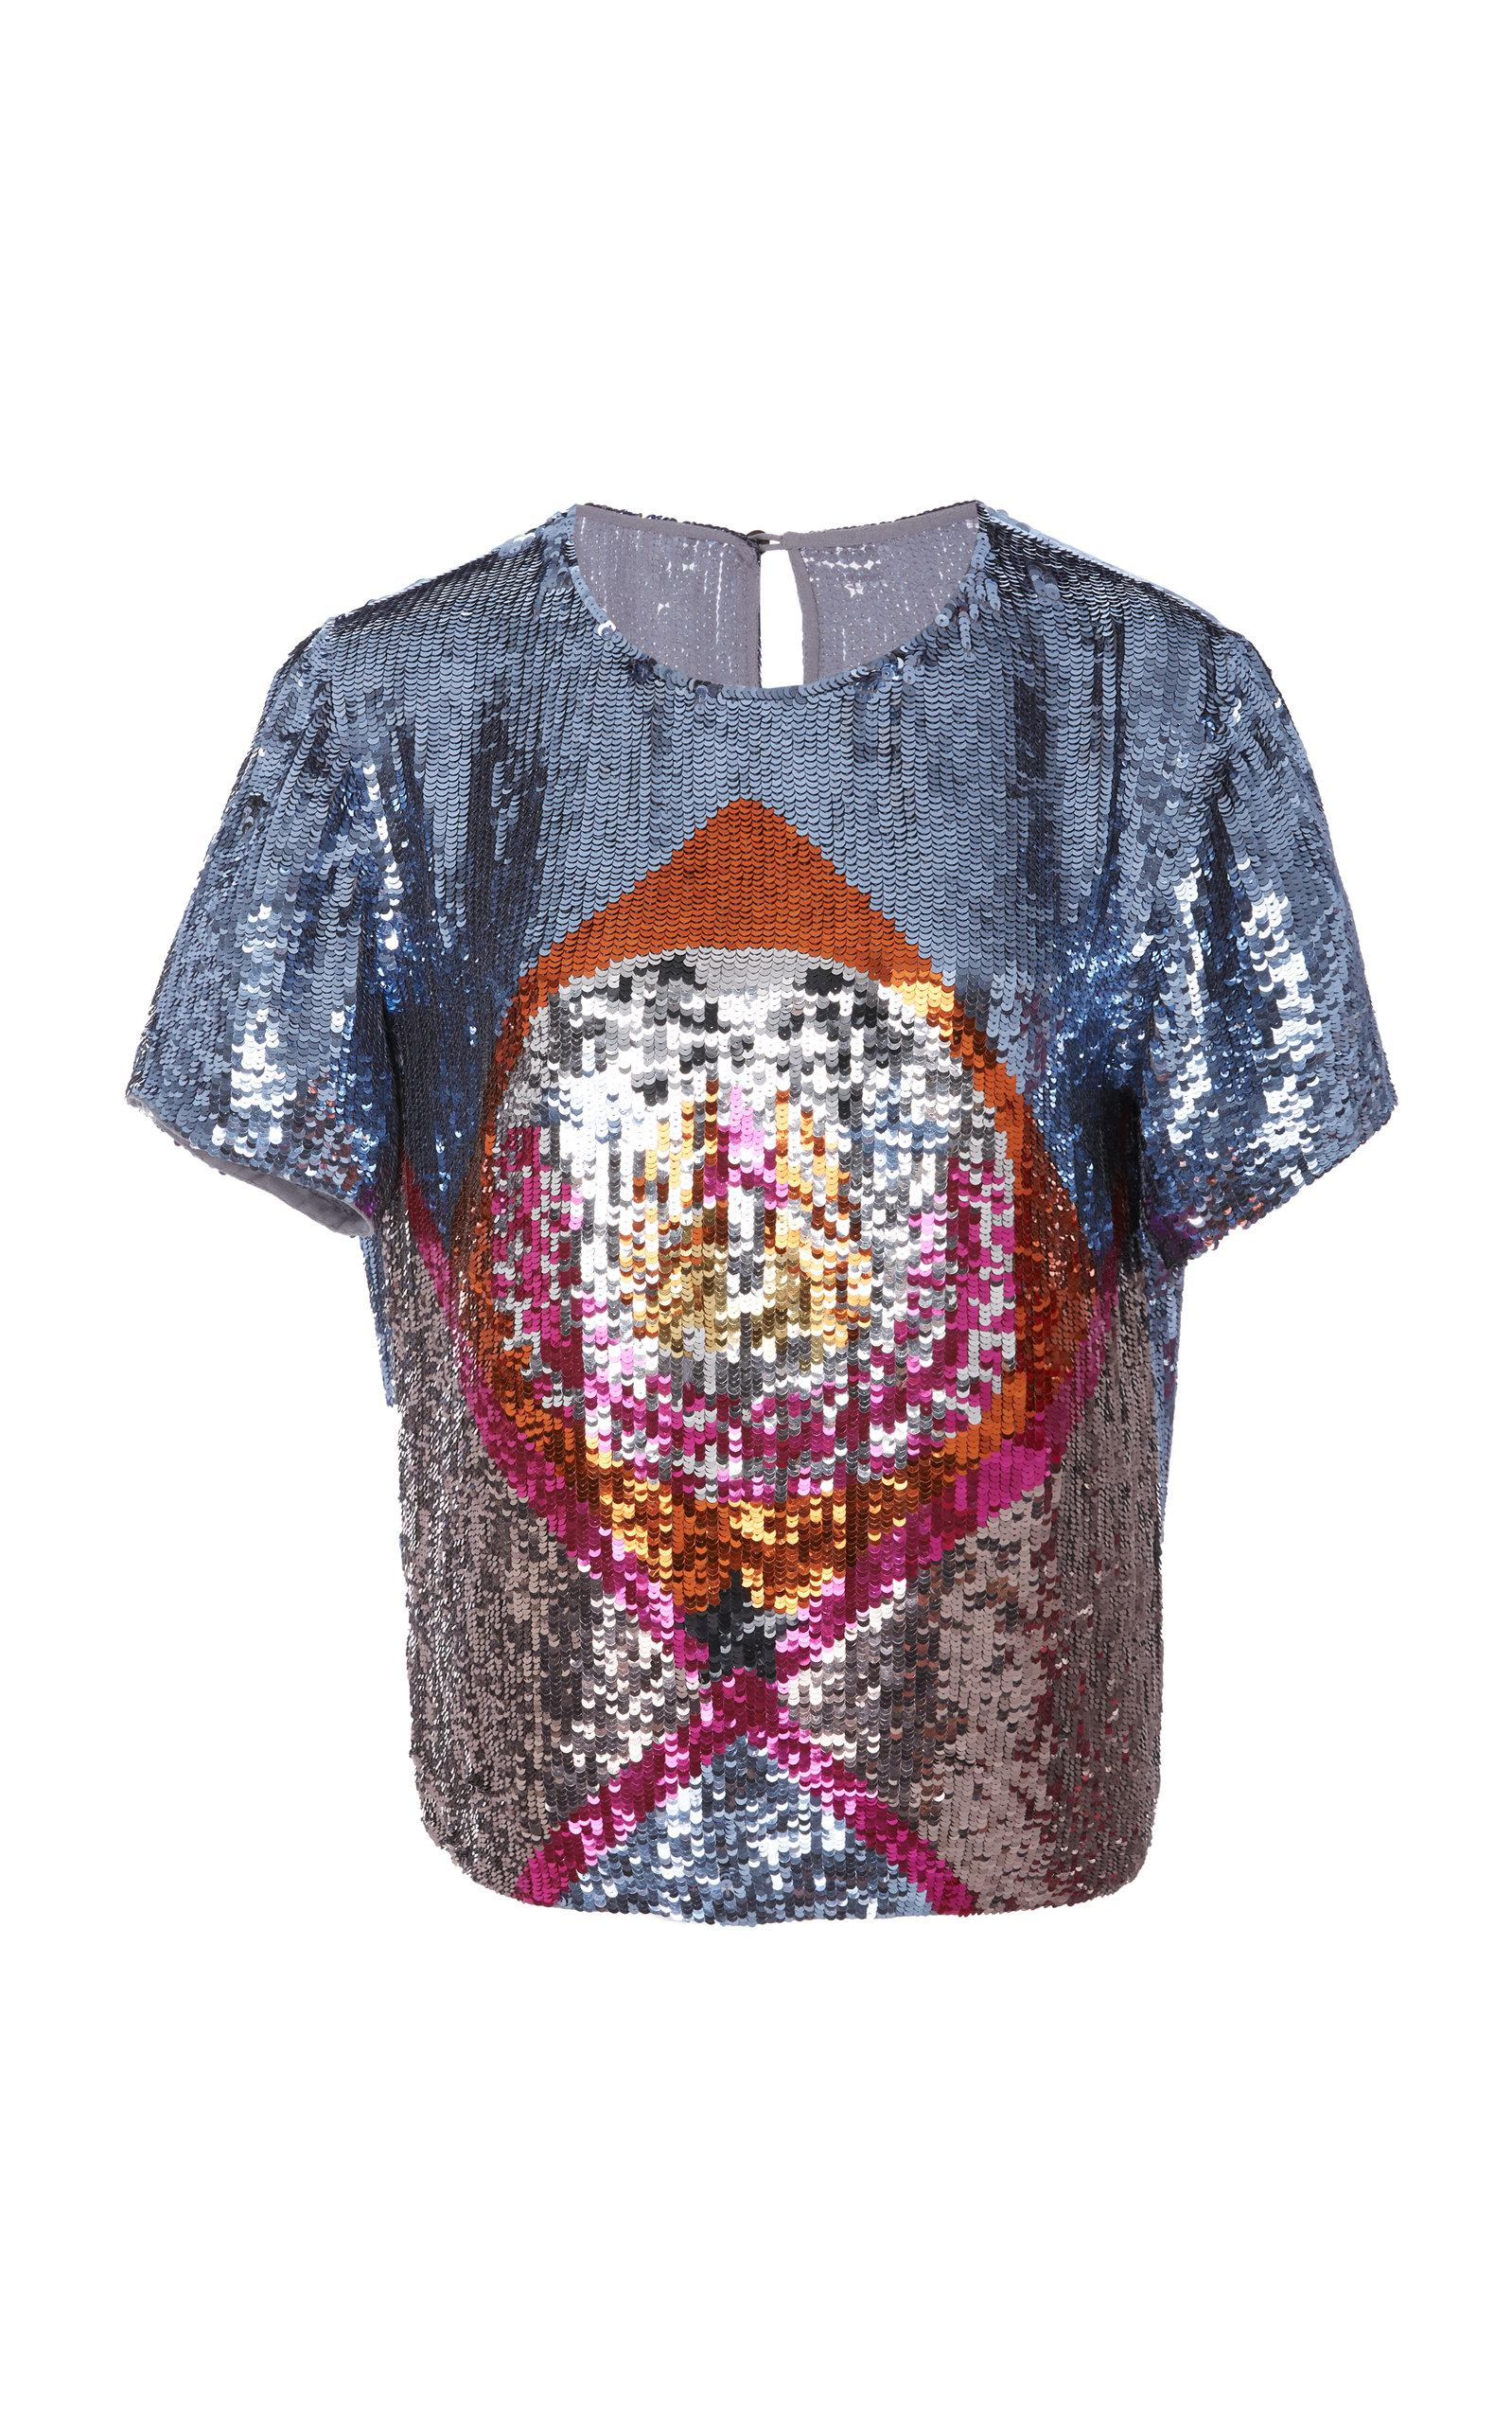 Stockist Online Sara Sequin T Shirt Temperley London Sale For Sale Cheap Sale The Cheapest Clearance Limited Edition zba92A0oS2